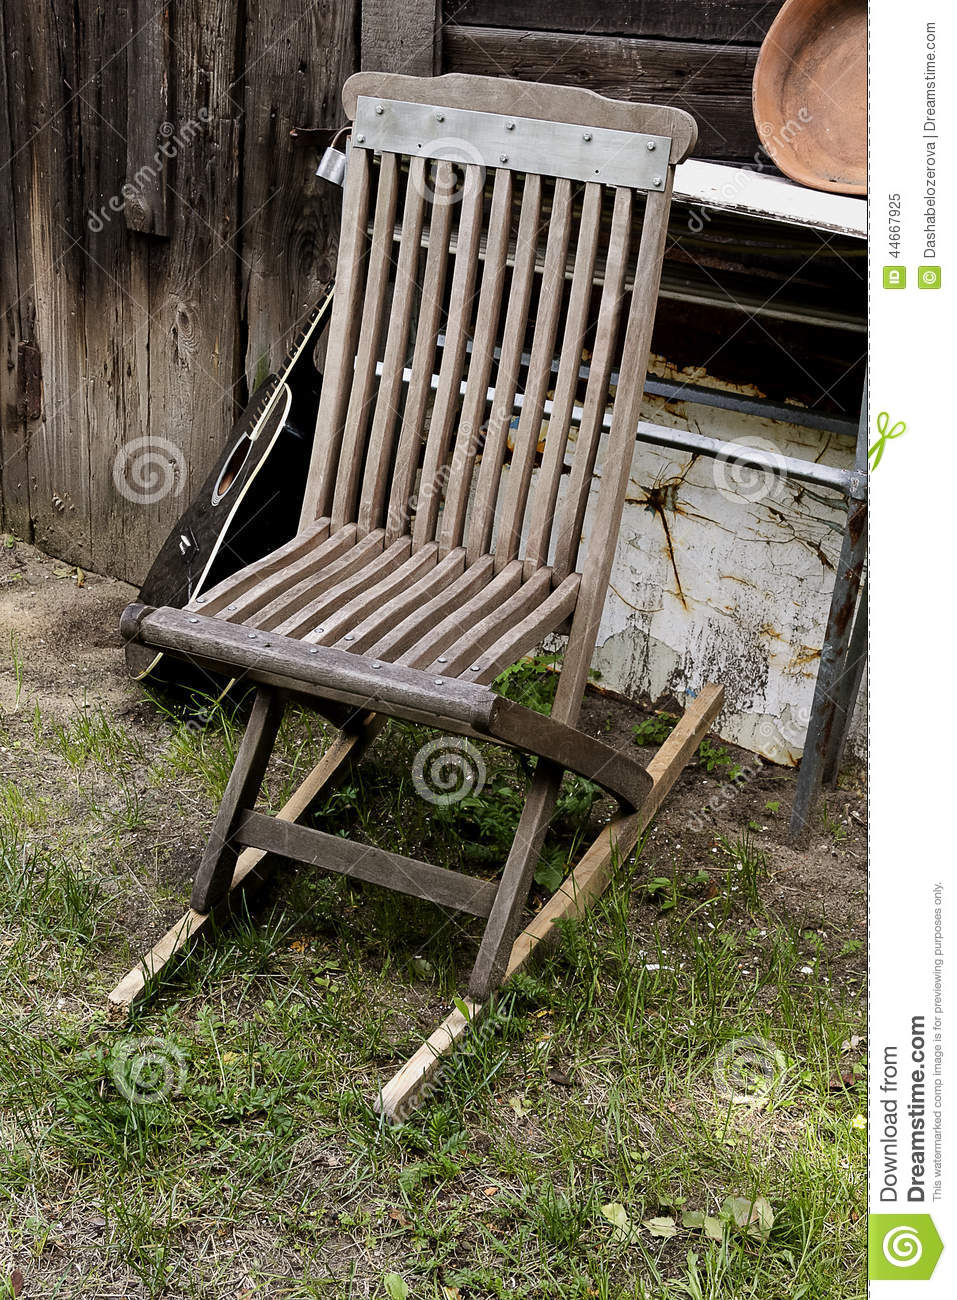 Groovy Old Chair And Guitar In Garden Stock Image Image Of Ocoug Best Dining Table And Chair Ideas Images Ocougorg